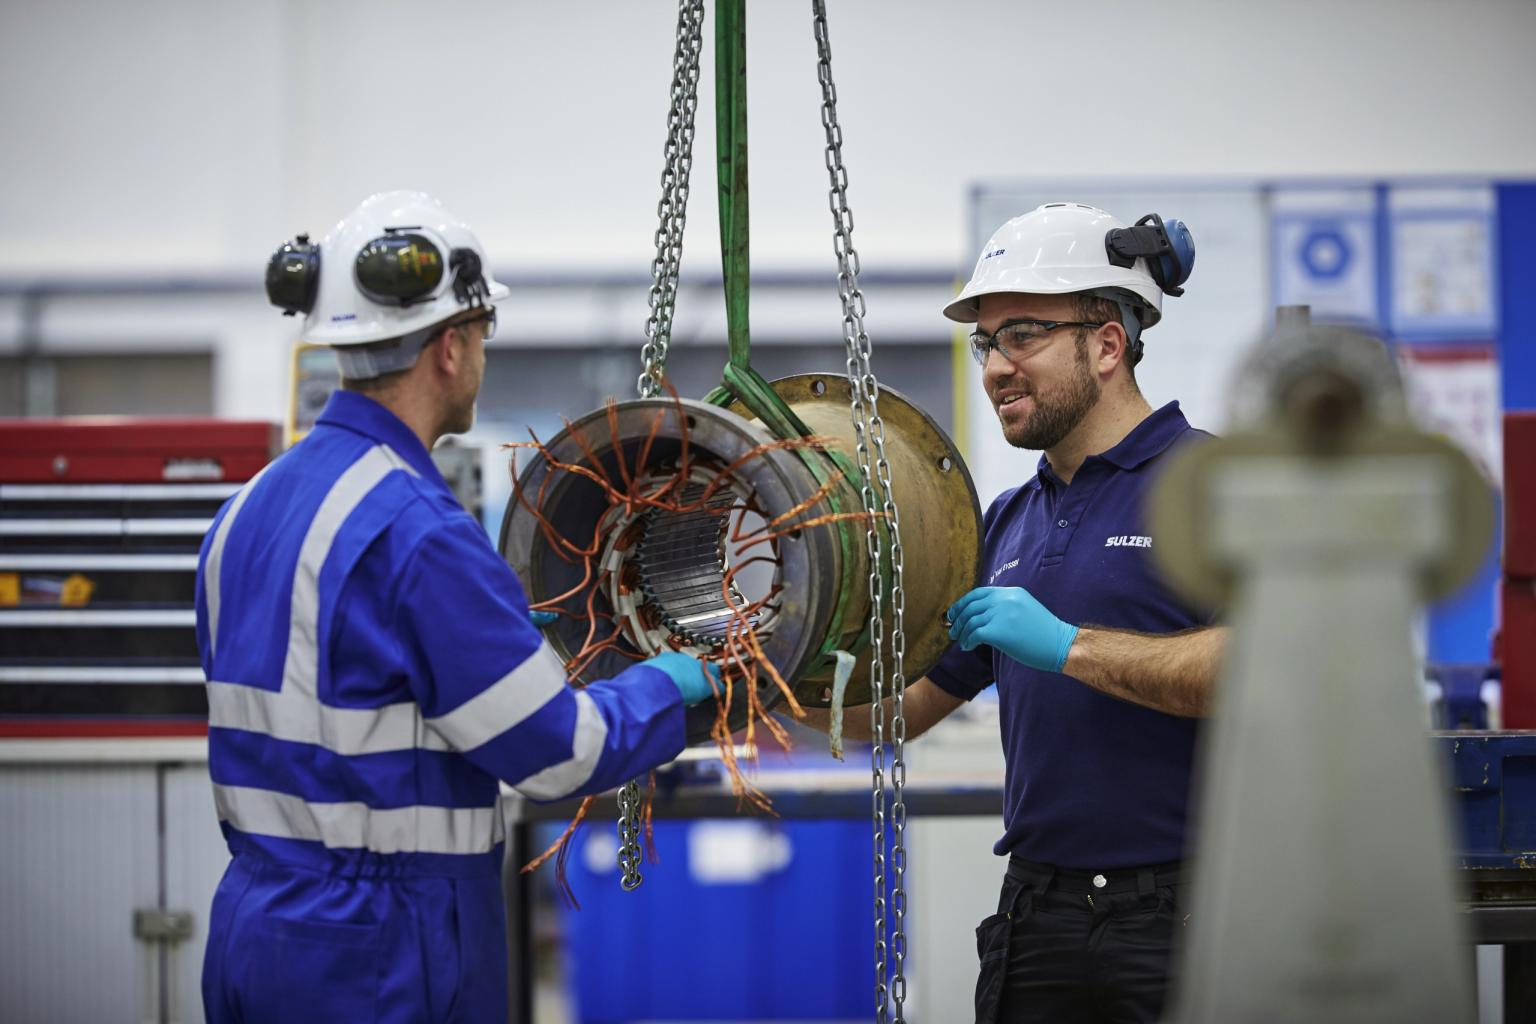 The global network of Sulzer engineers has considerable experience in maintaining and managing mature equipment by applying experience and the latest technological innovations. Image: Sulzer